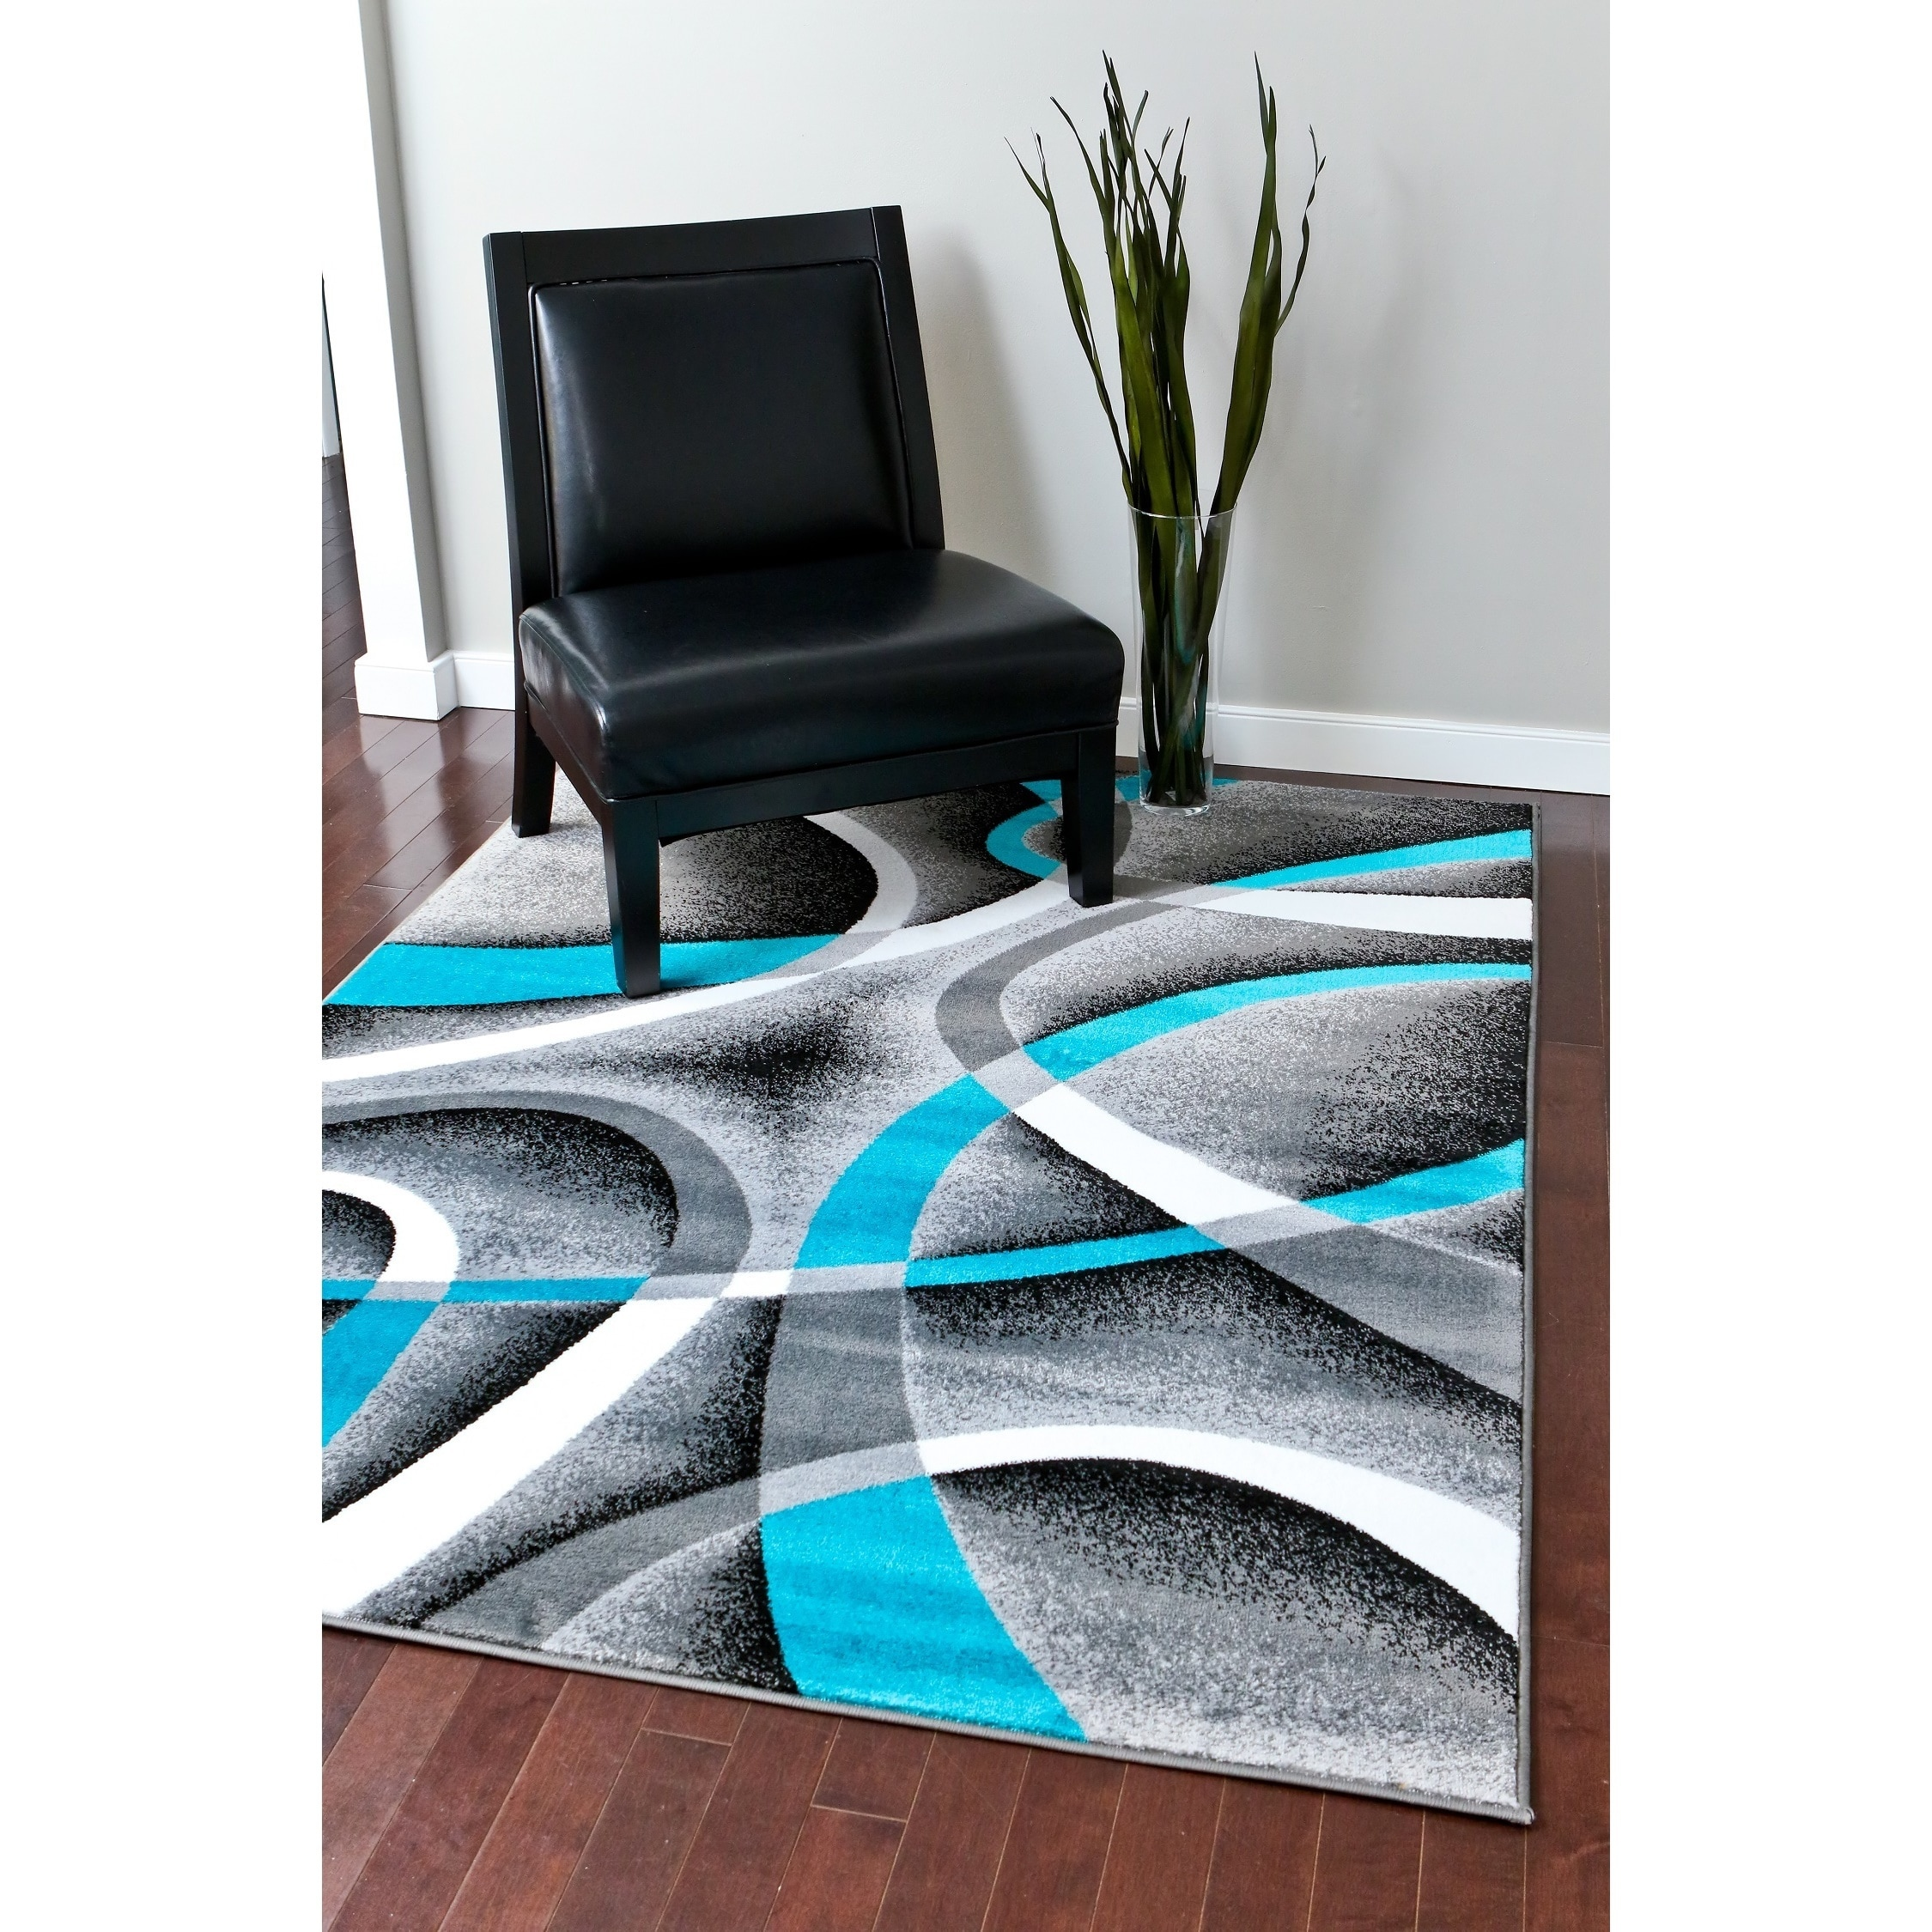 persian rugs modern trendz collection turquoise grey rug (' x ') free shipping today  overstockcom  . persian rugs modern trendz collection turquoise grey rug (' x